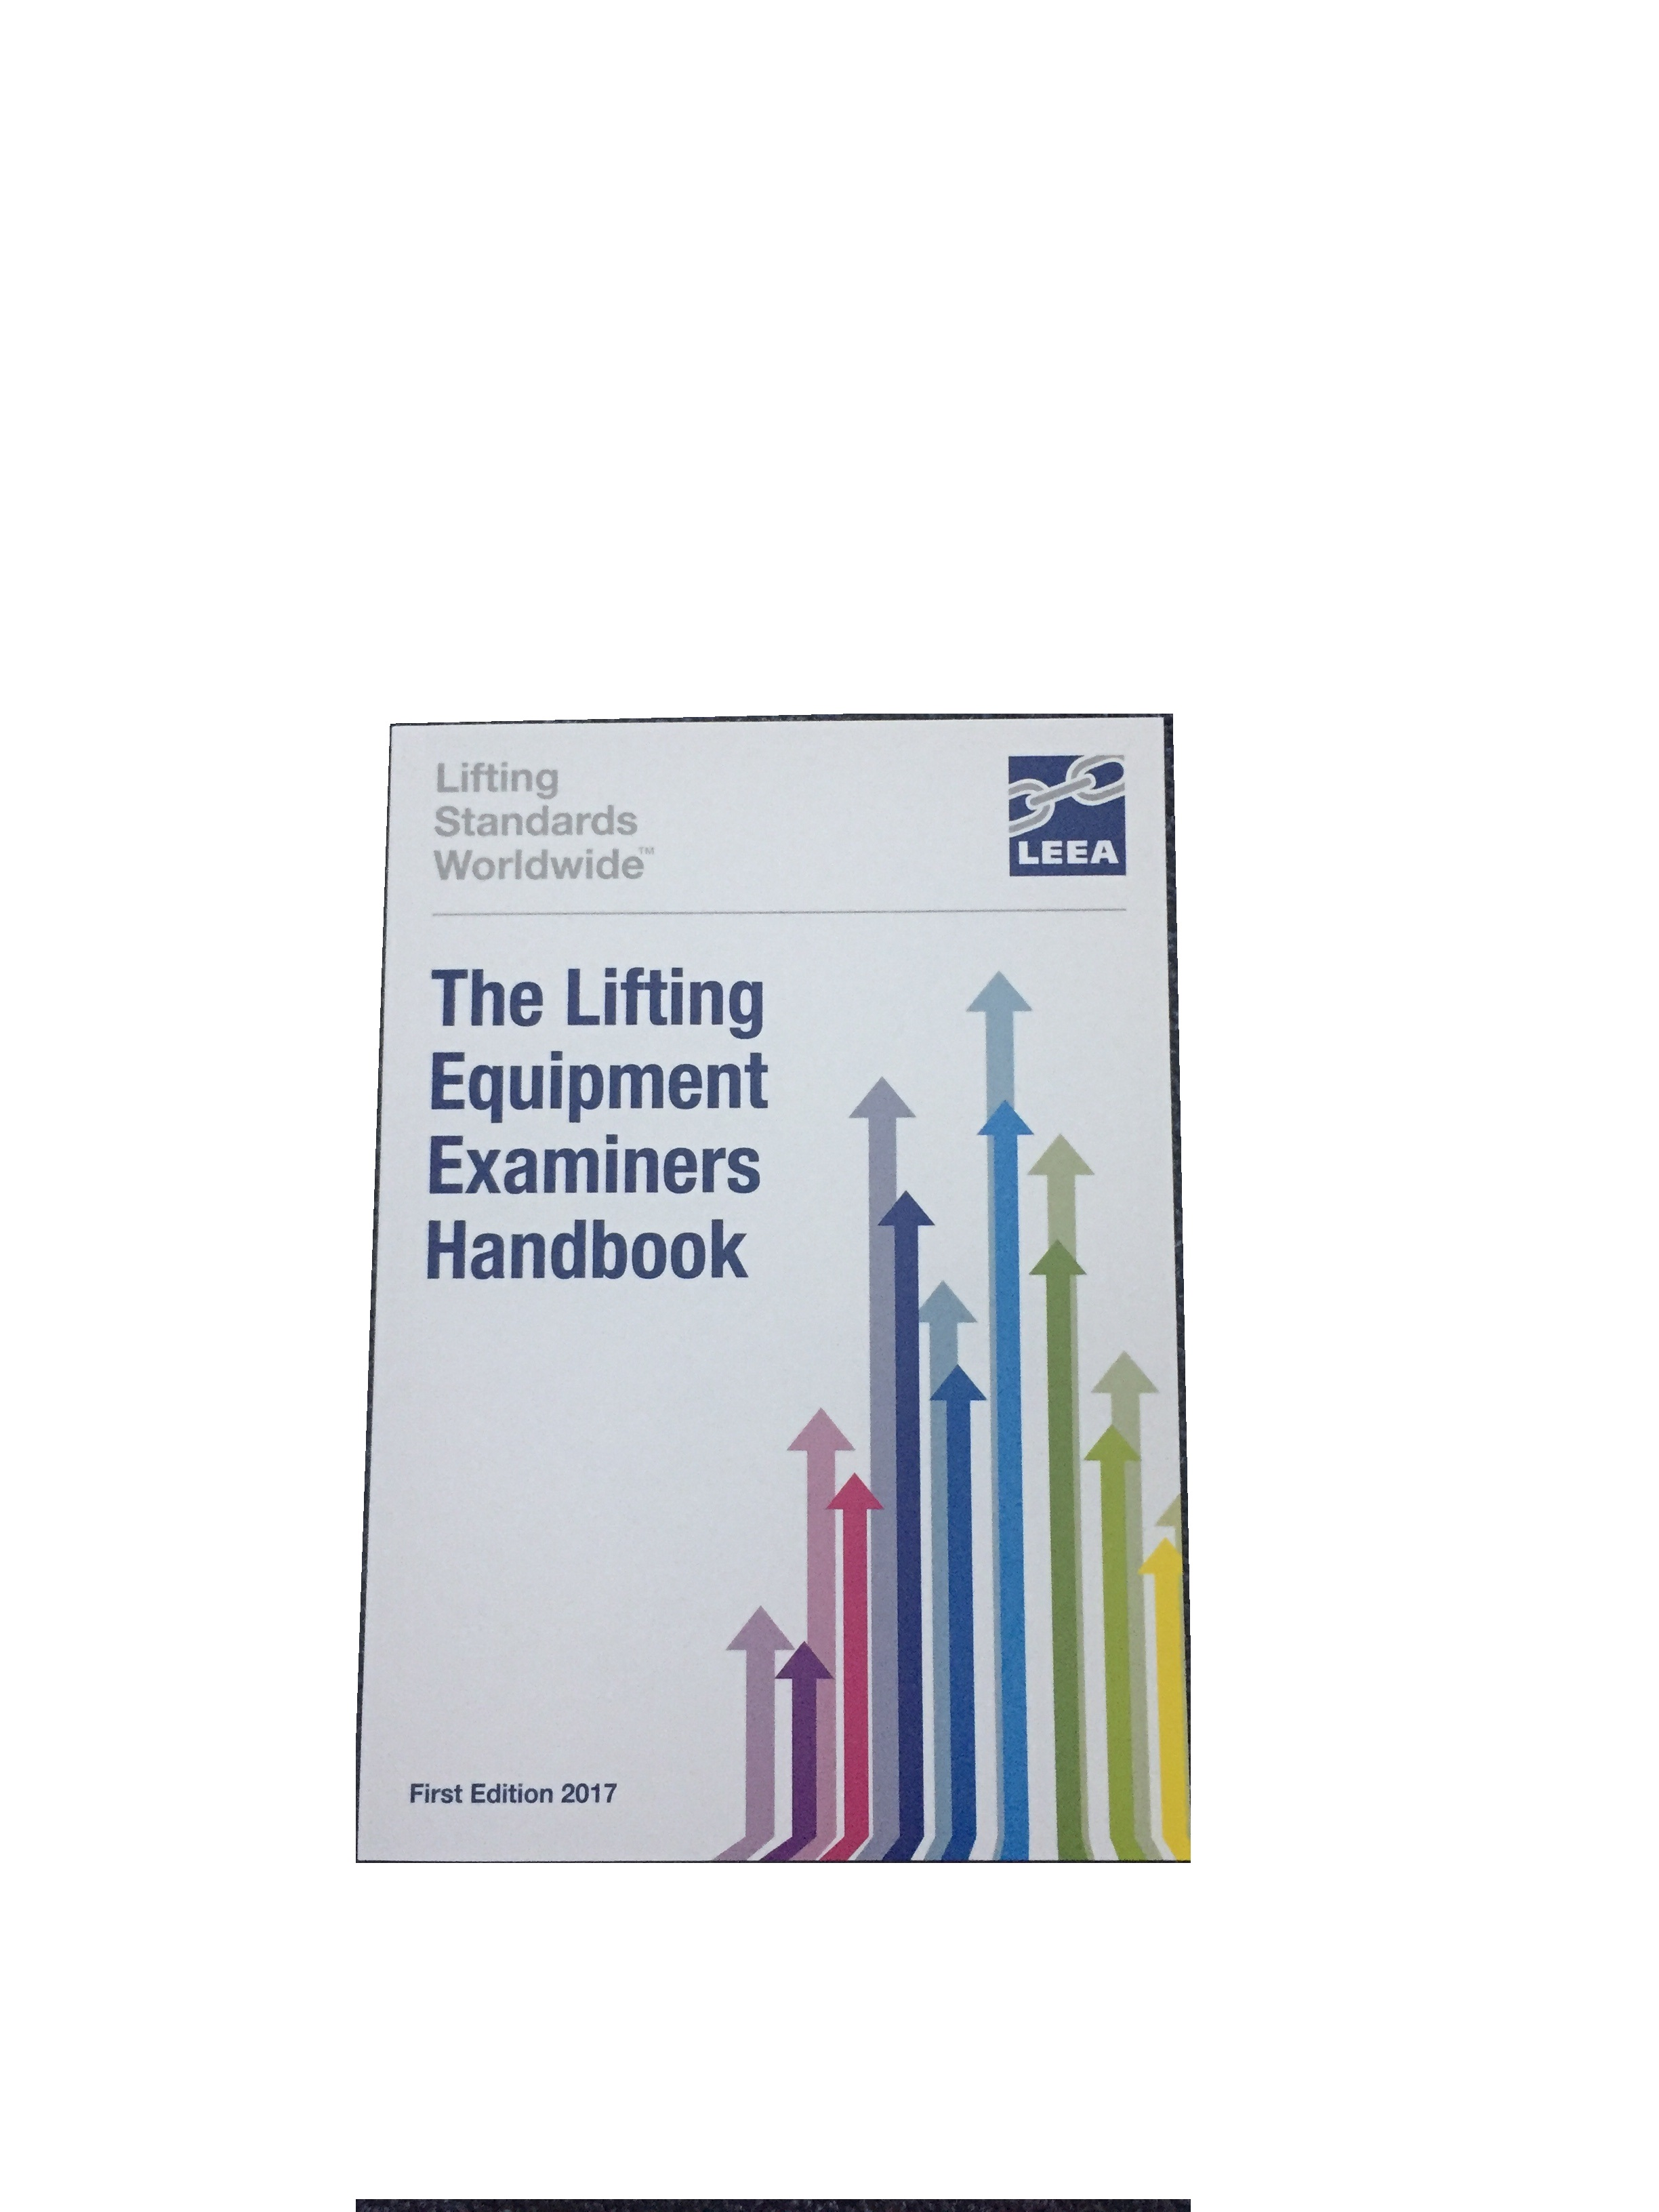 The Lifting Equipment Examiners Handbook